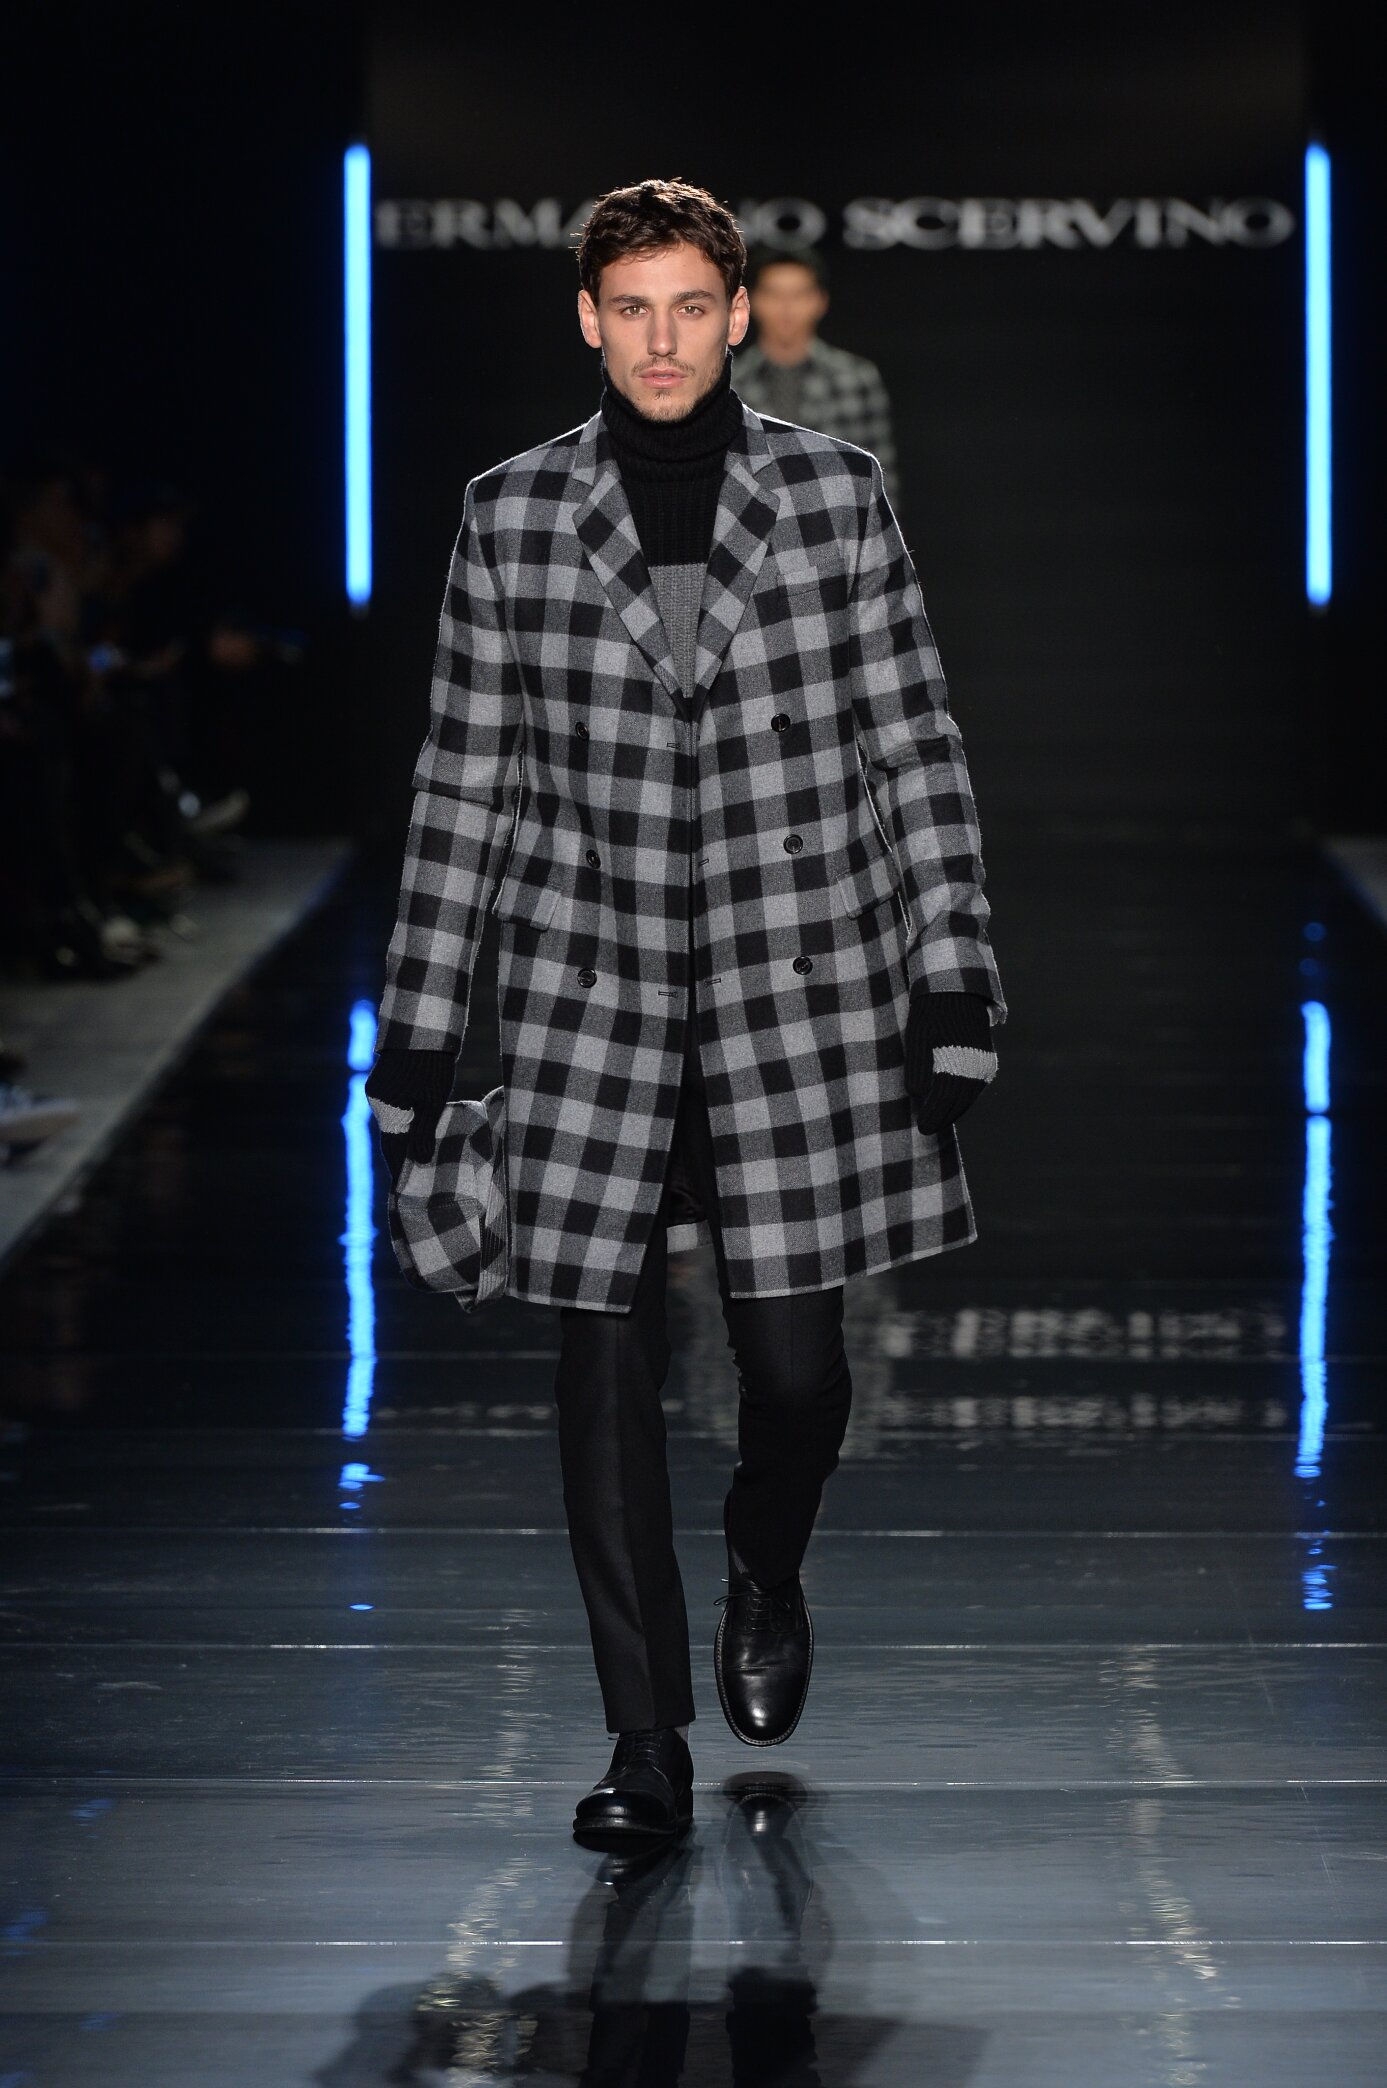 Fashion Winter Trends 2014 2015 Ermanno Scervino